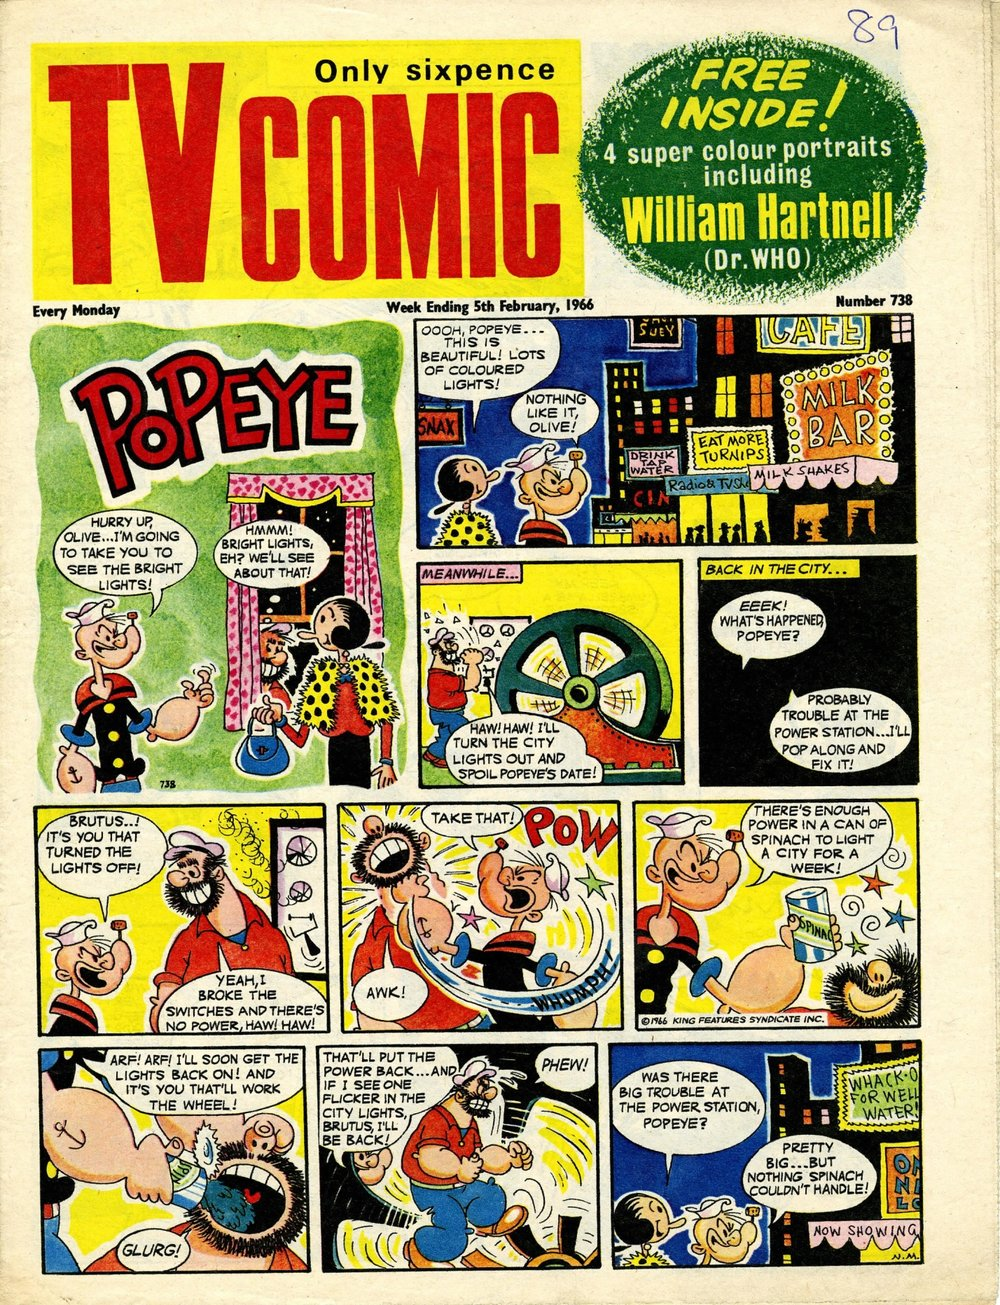 TV Comic, no. 738, 5 February 1966, advertising the free William Hartnell sticker